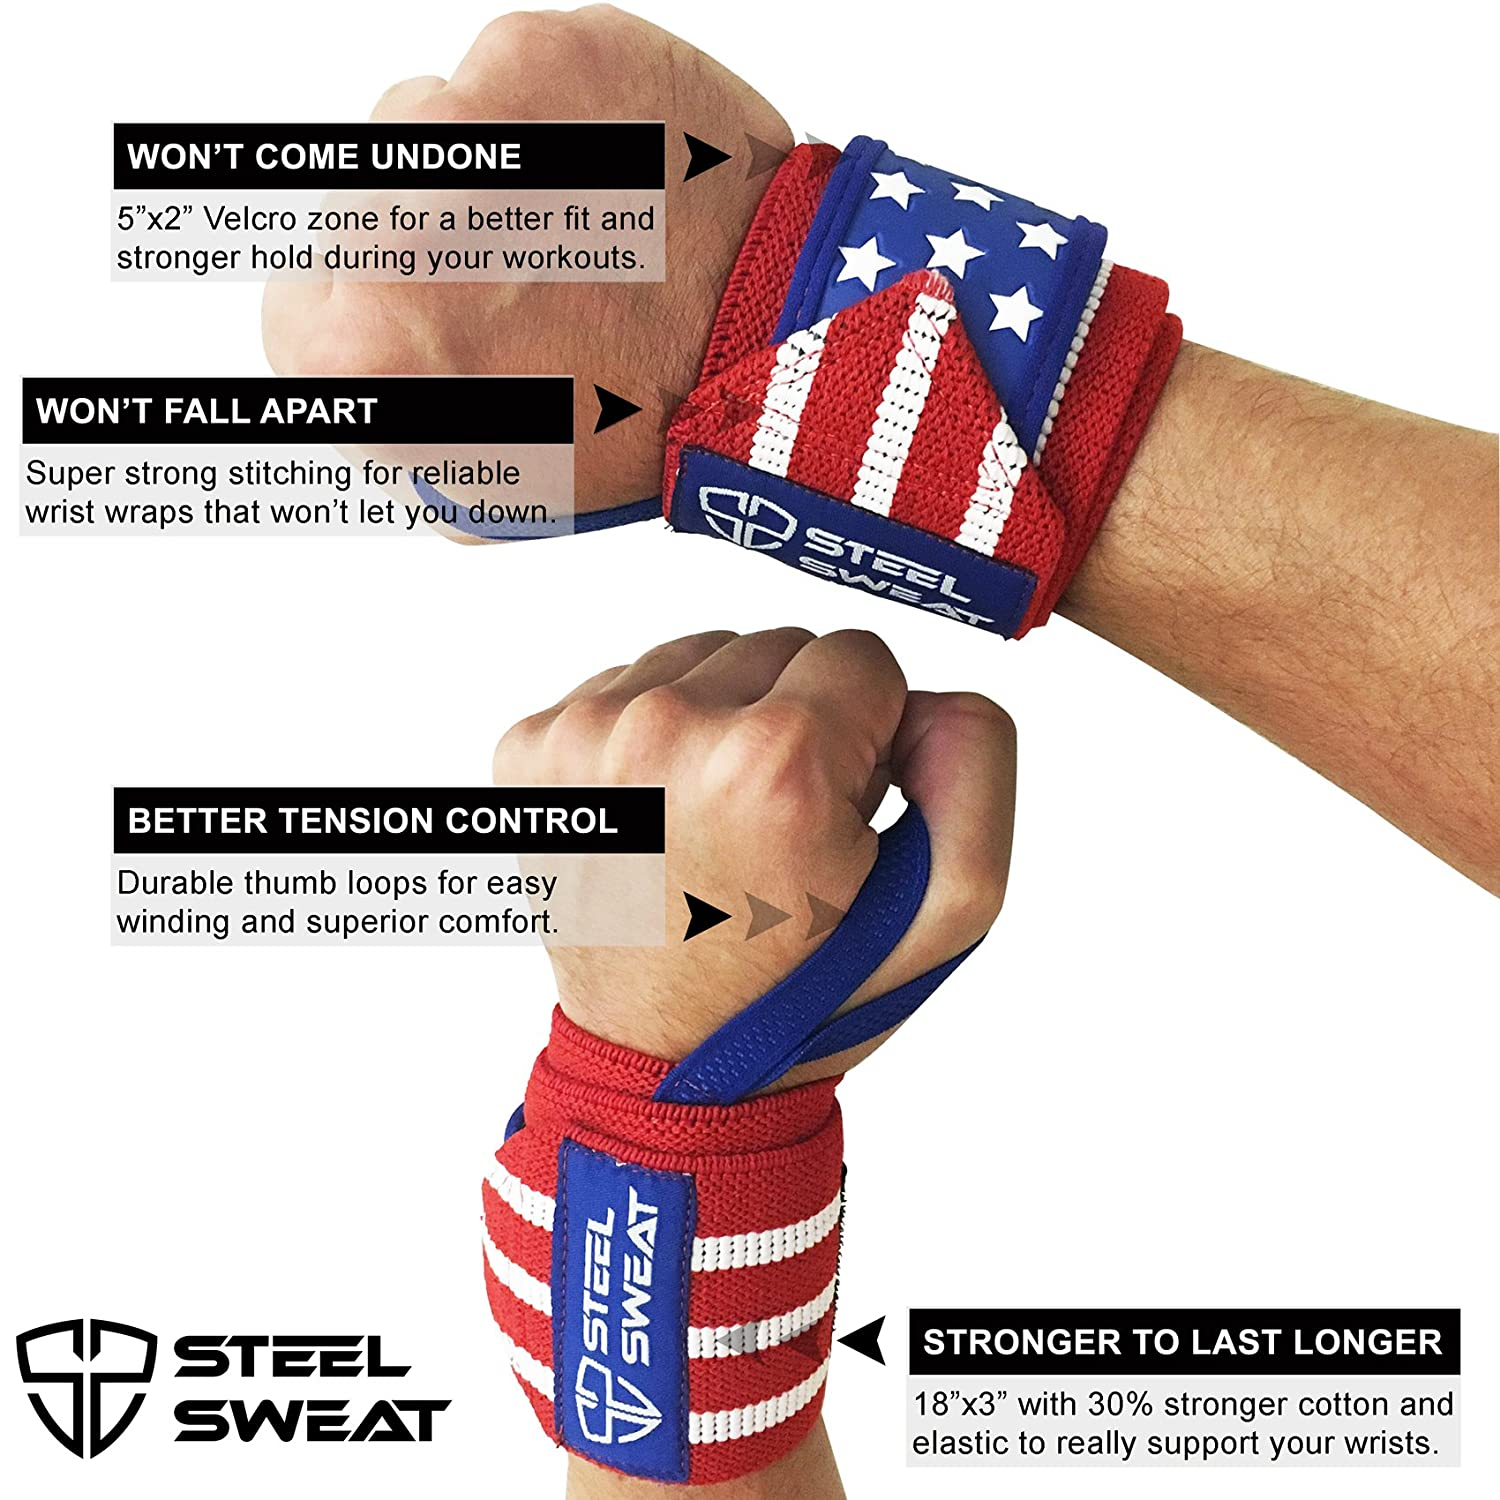 The 6 Best Wrist Supports for CrossFit in 2018 - Steel Sweat Wrist Wraps